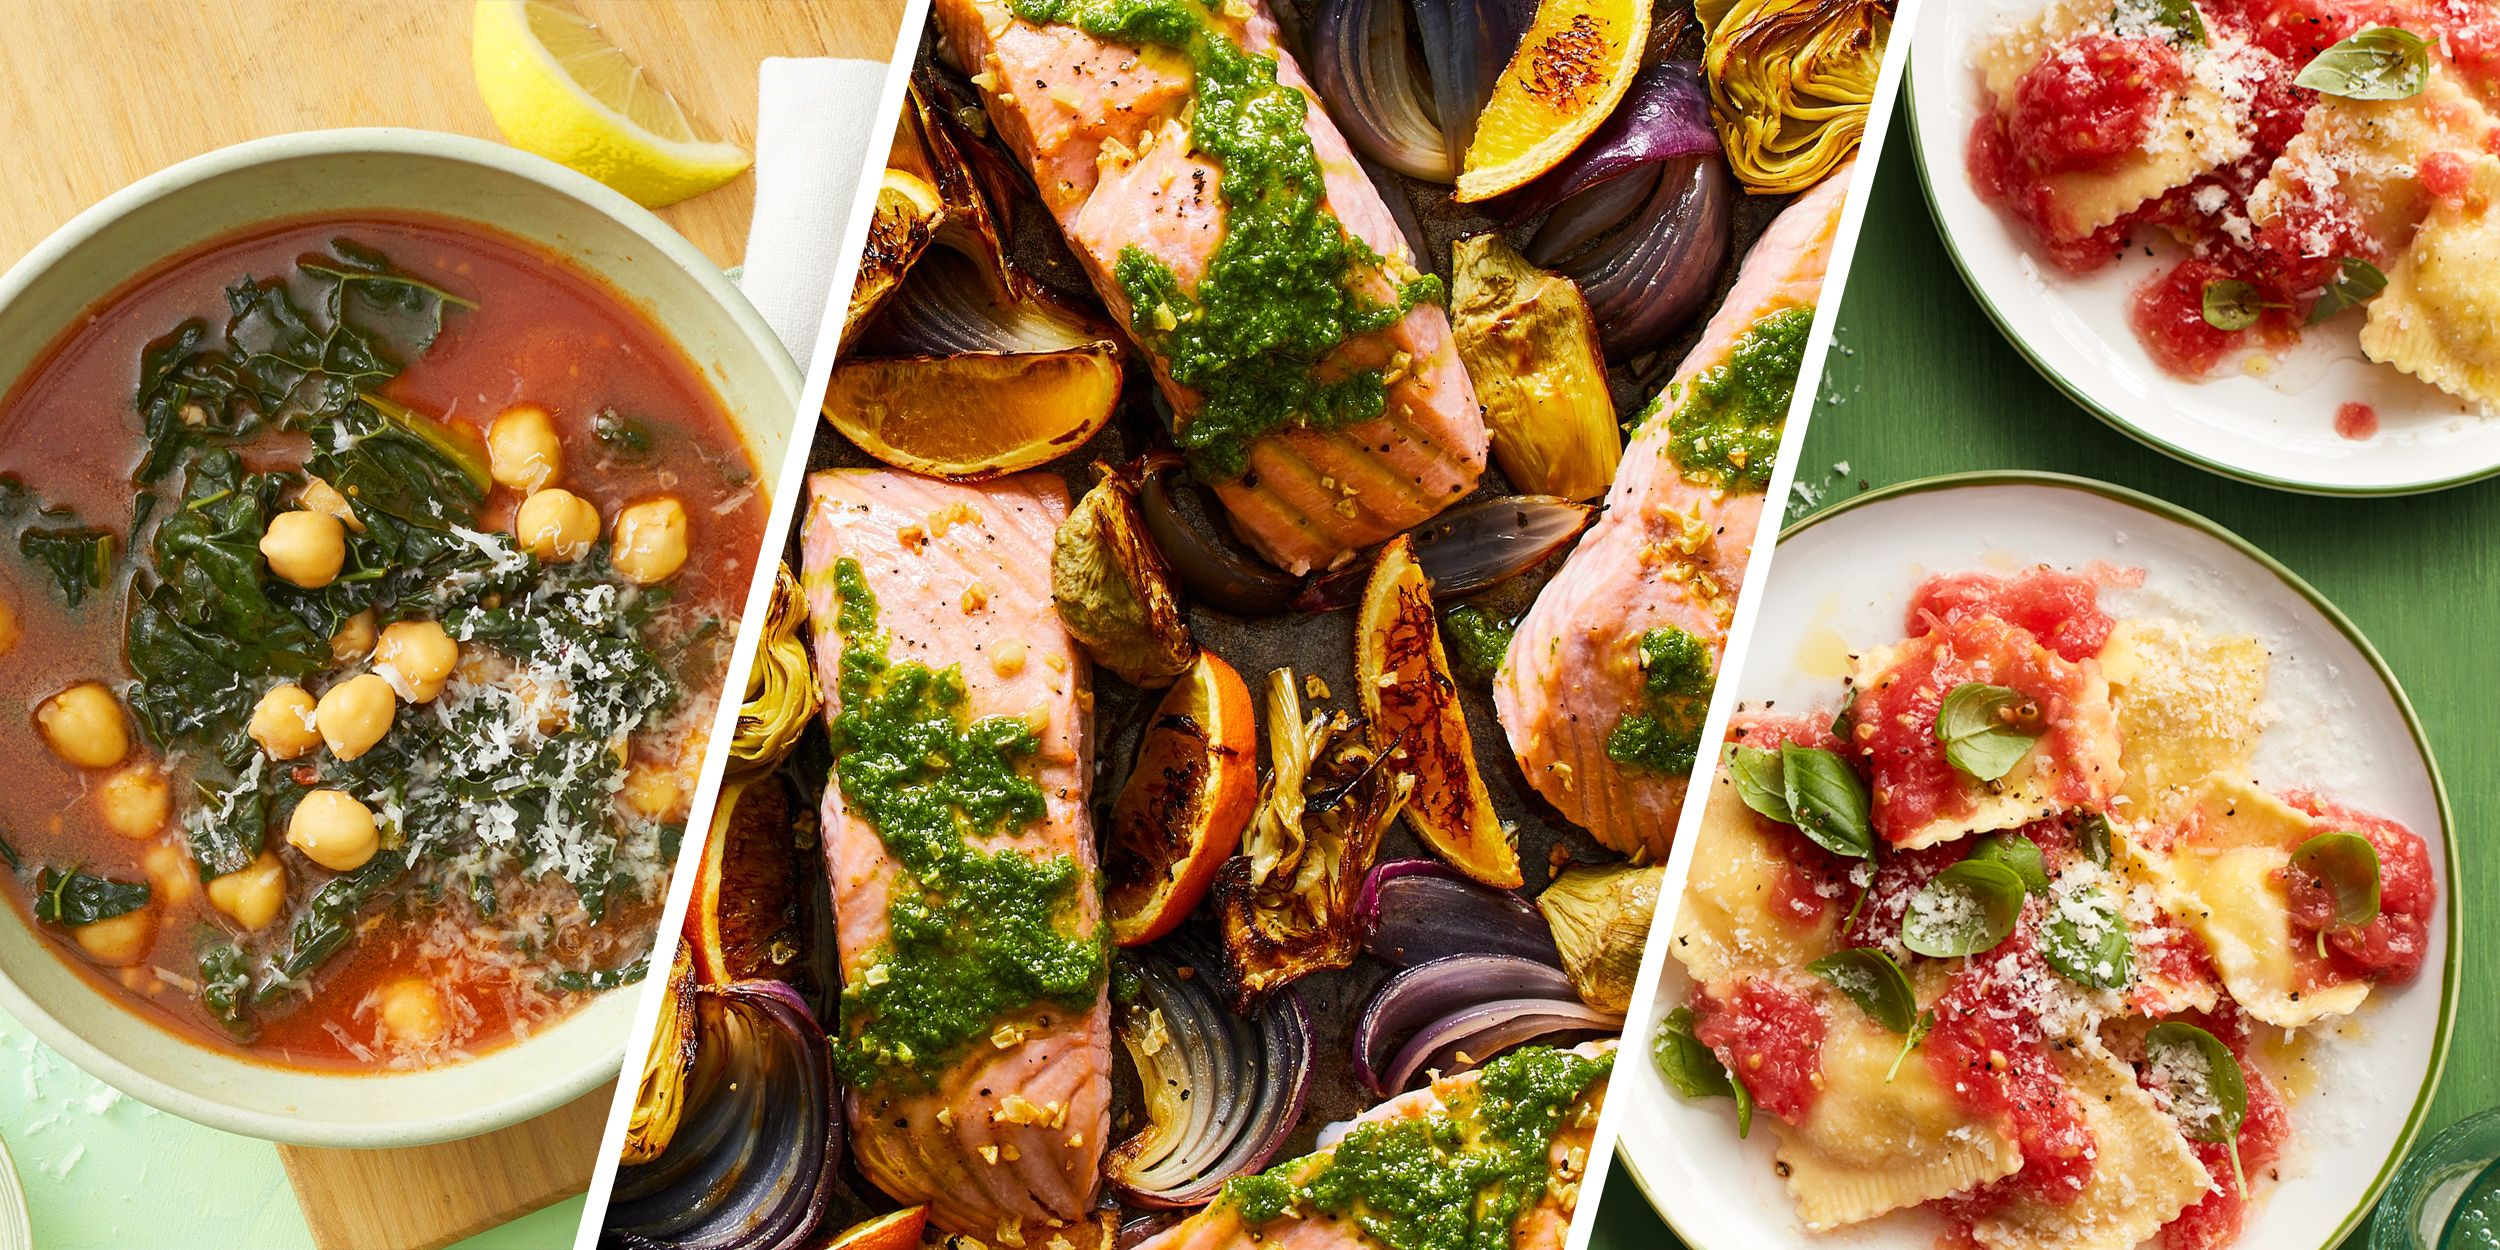 30 Best Cold Weather Recipes Healthy And Tasty Winter Meals